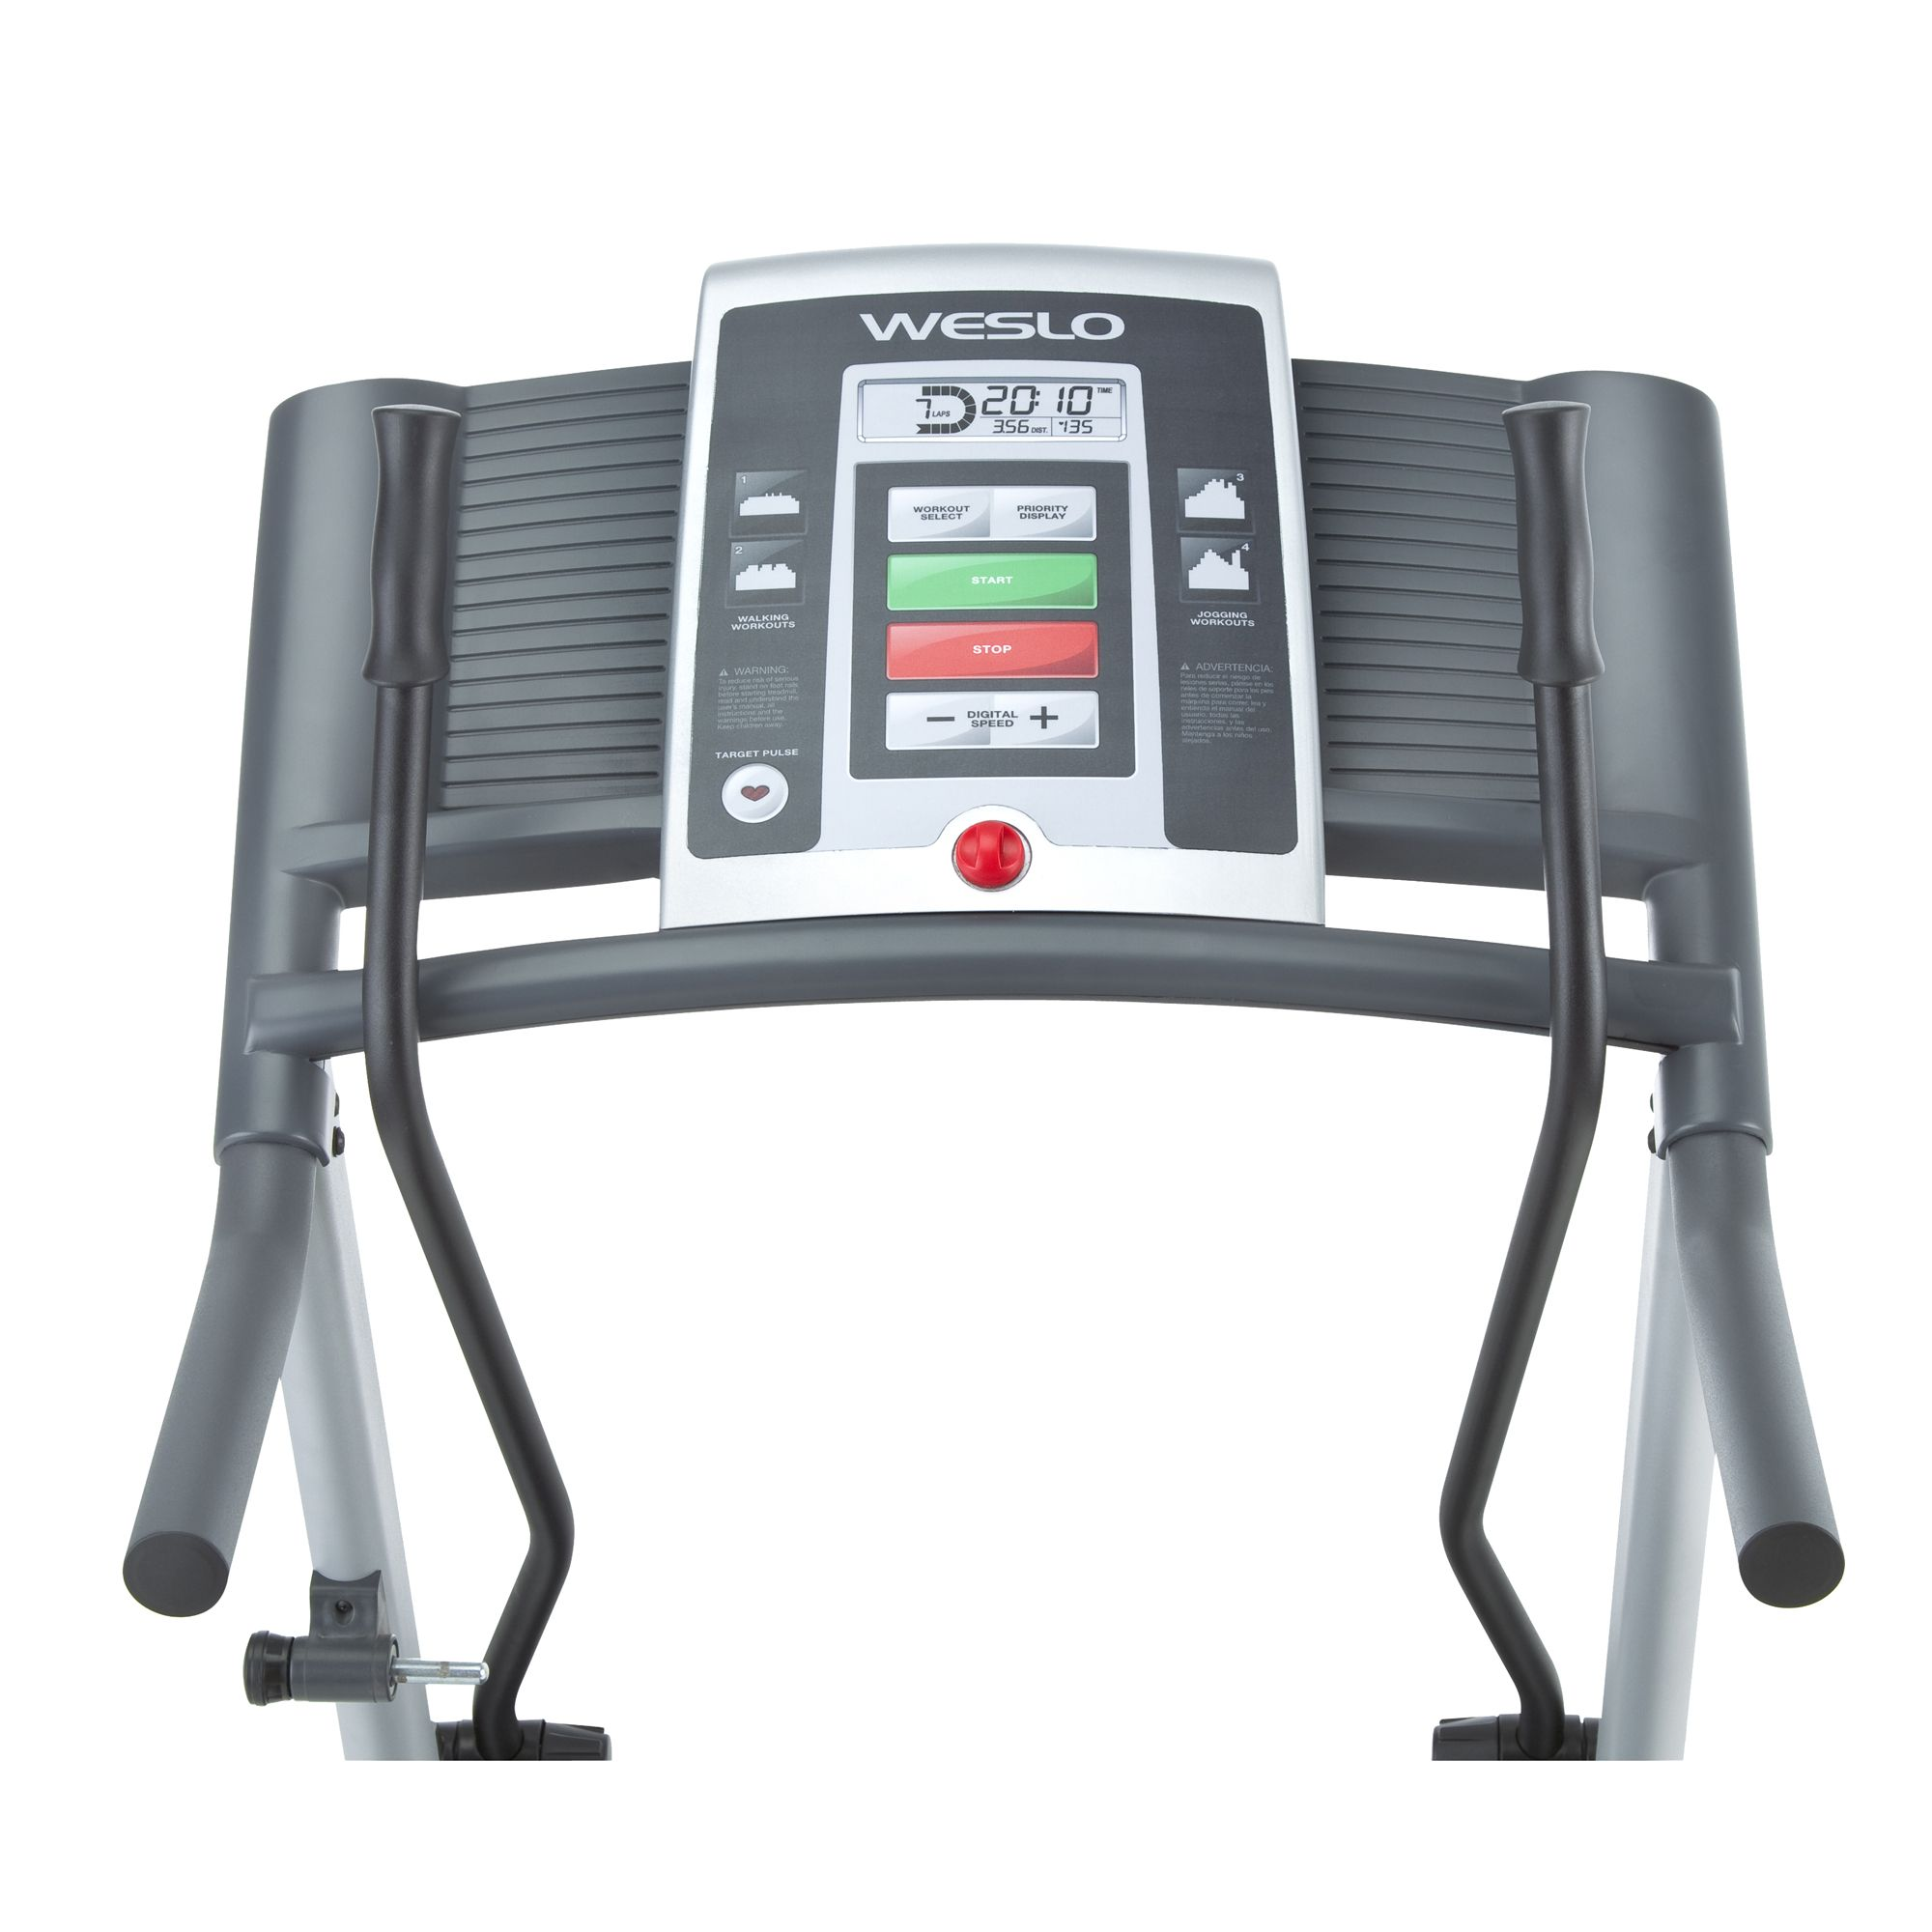 Weslo Treadmill CrossWalk 5.0t